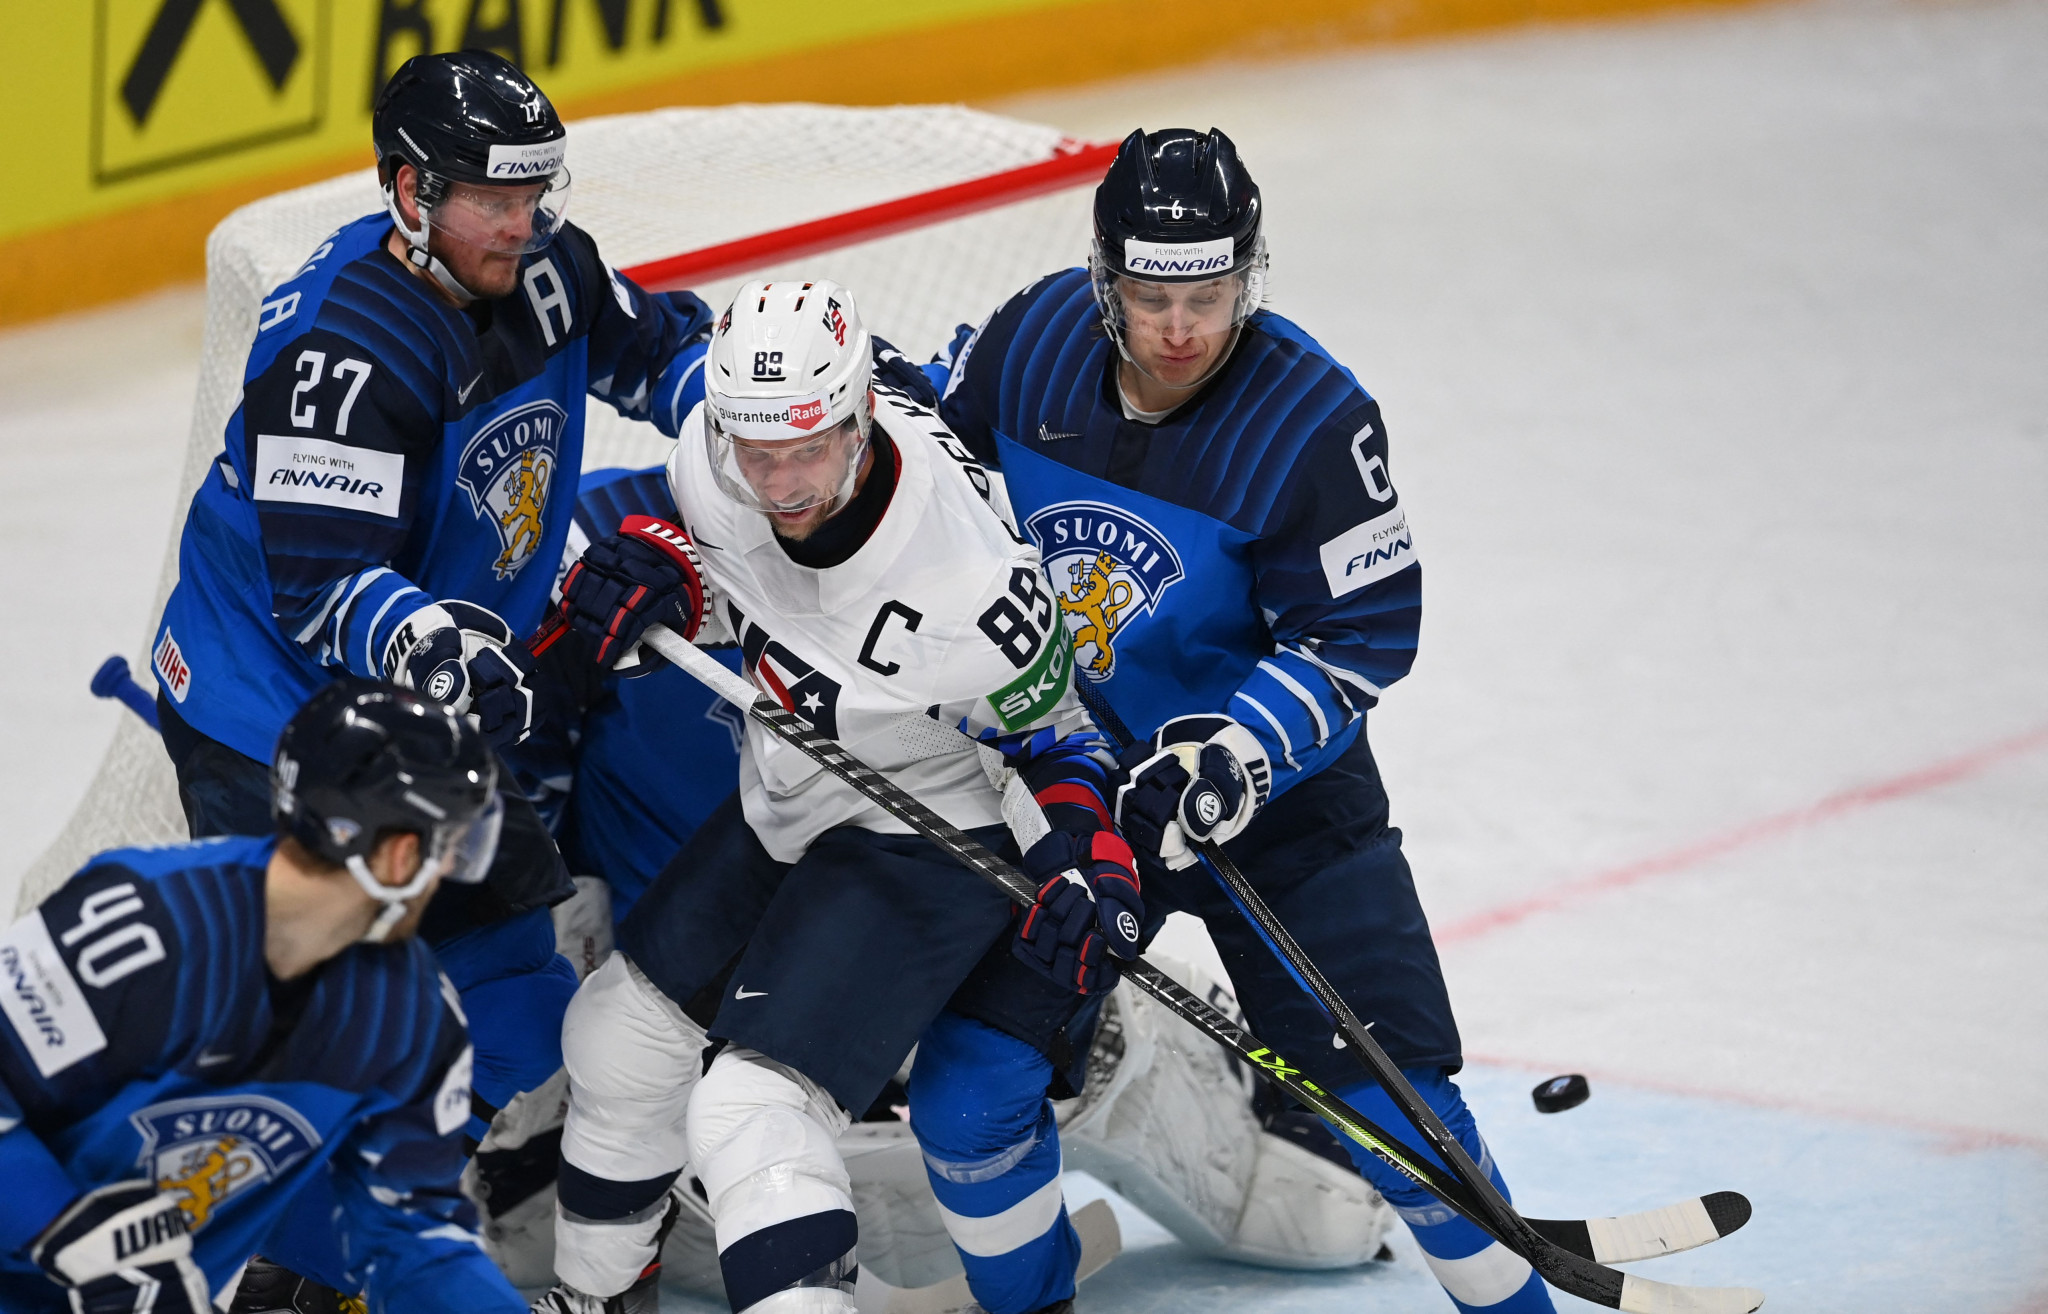 Finland begin defence of IIHF Men's World Championship with victory